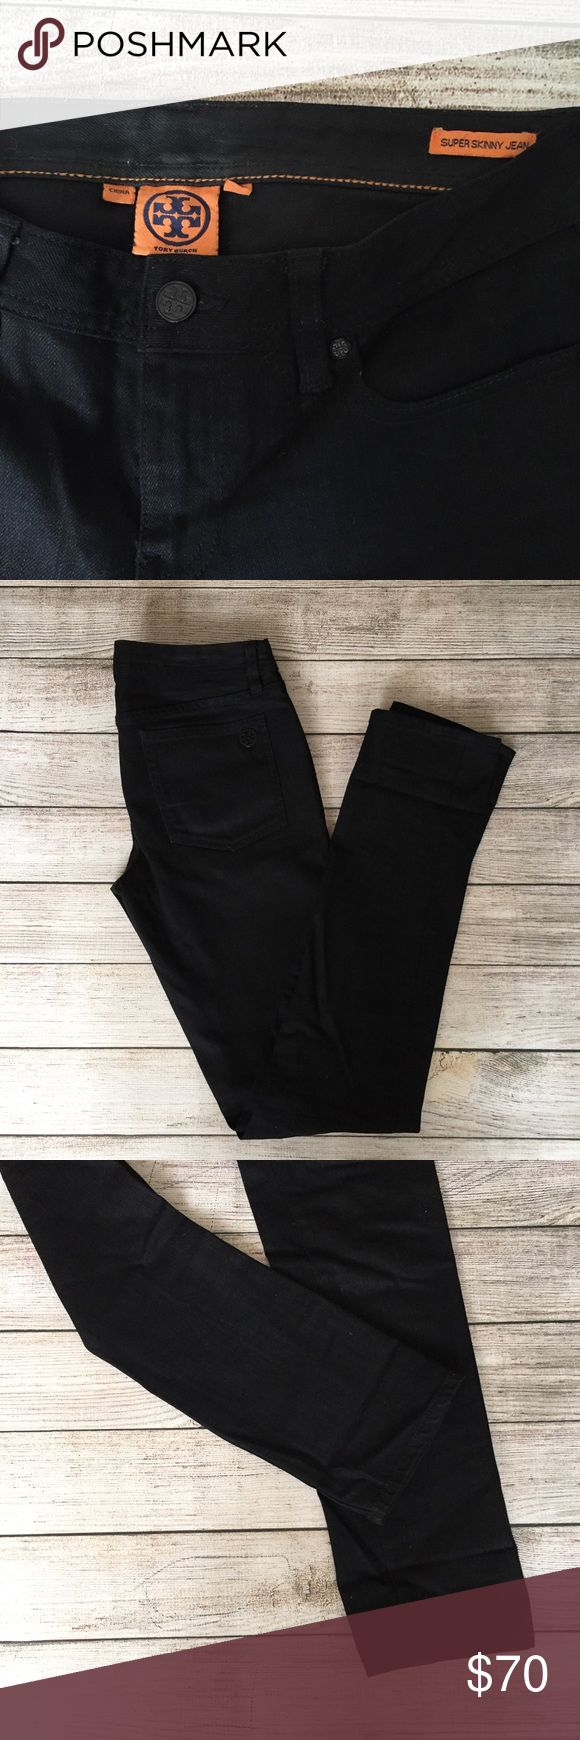 "Tory Burch Super Skinny Black Jeans Super skinny leg. 34"" inseam. 8"" rise. Excellent condition 🚫NO TRADES/NO MODELING🚫✅BUNDLE TO SAVE✅ Tory Burch Jeans Skinny"